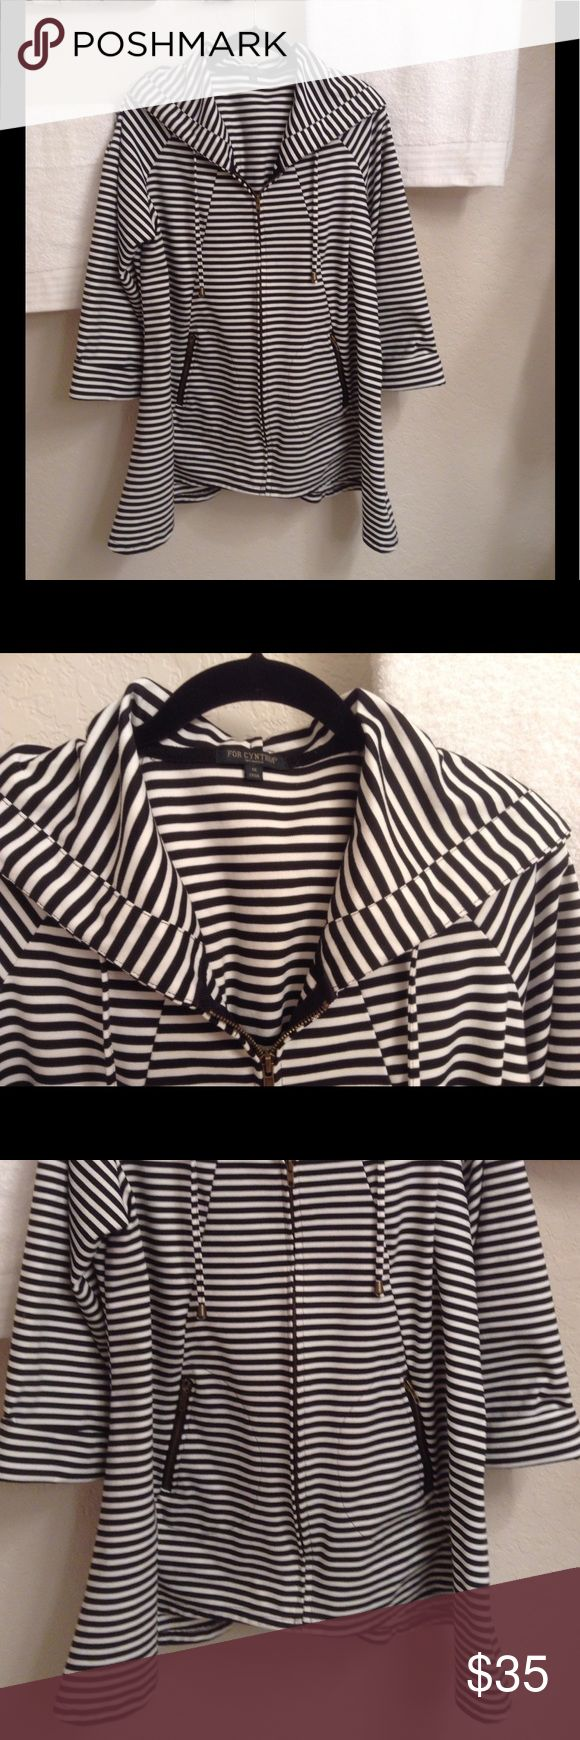 FOR Cynthia Woman Jacket Beautiful!!  This black & white striped jacket has a full zip up front, a drawstring closure hood, longer bottom sides, 3/4 rolled up sleeves, a 2 button cinch in the middle back, and 2 bottom front zip up pockets.  It's 96% Polyester/4% Spandex.  The chest measures 48 inches & the length is 30 inches. Cynthia Rowley Jackets & Coats